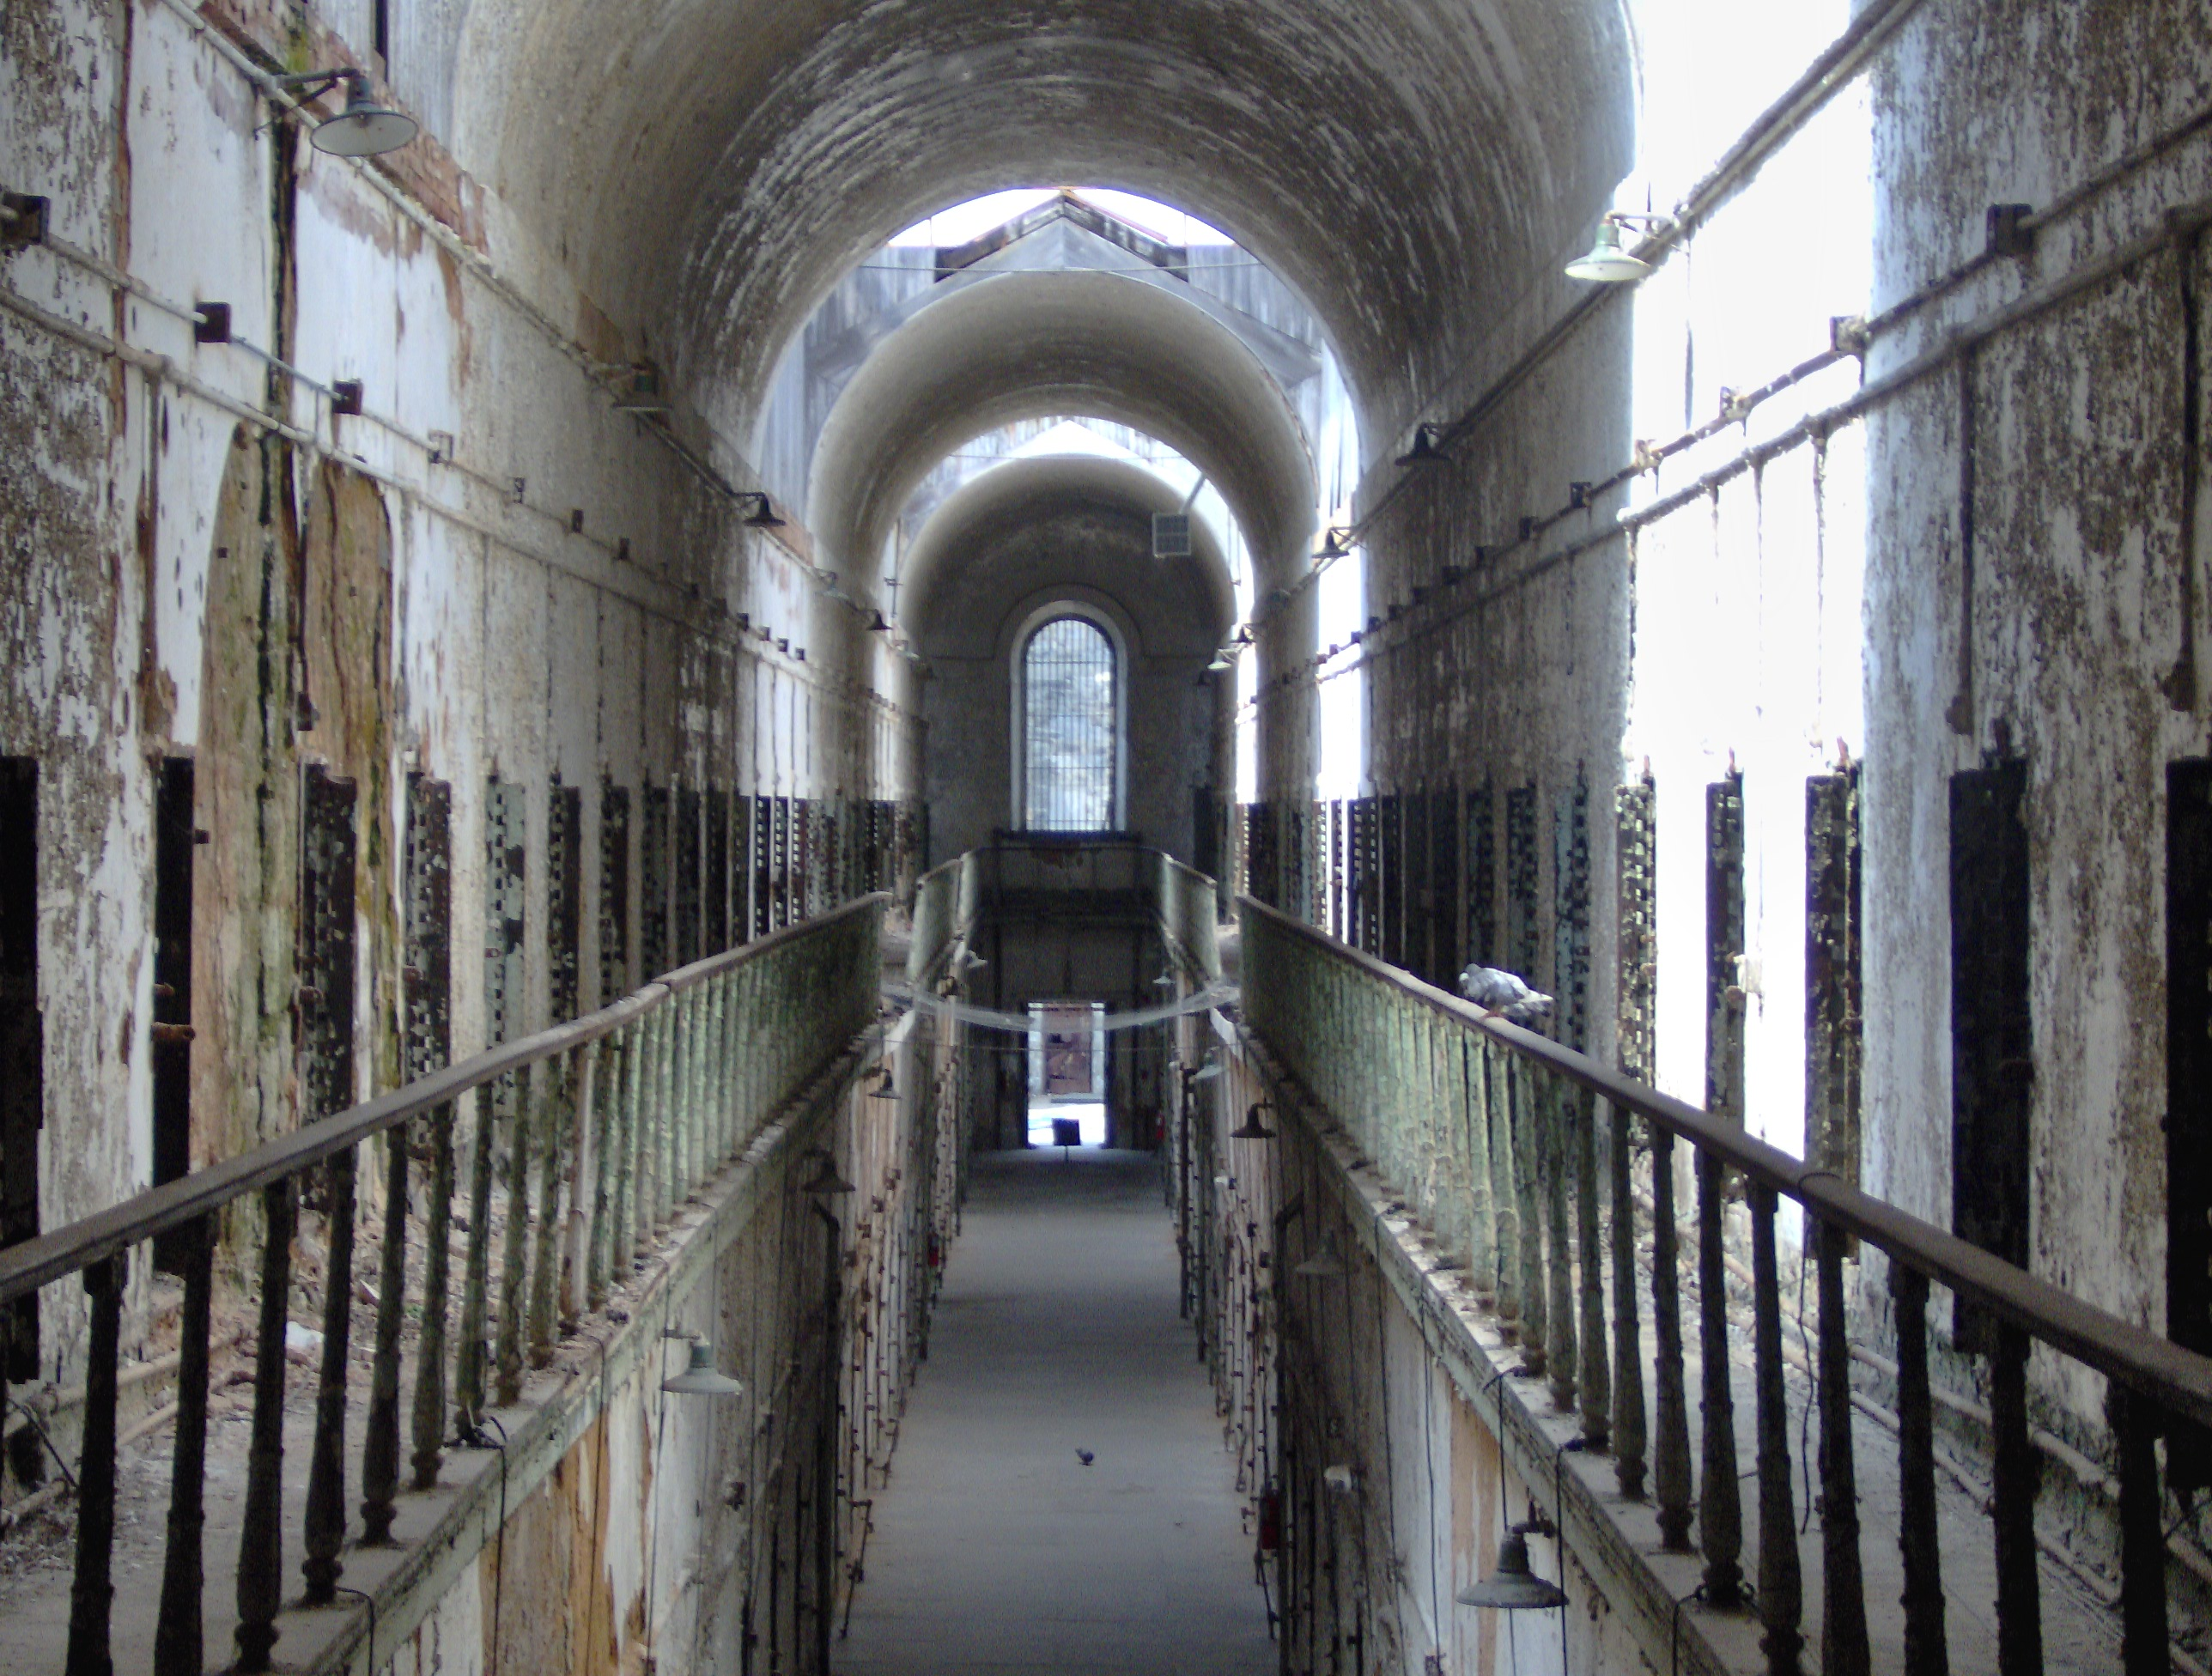 A discussion about the history of the penitentiary project in united states